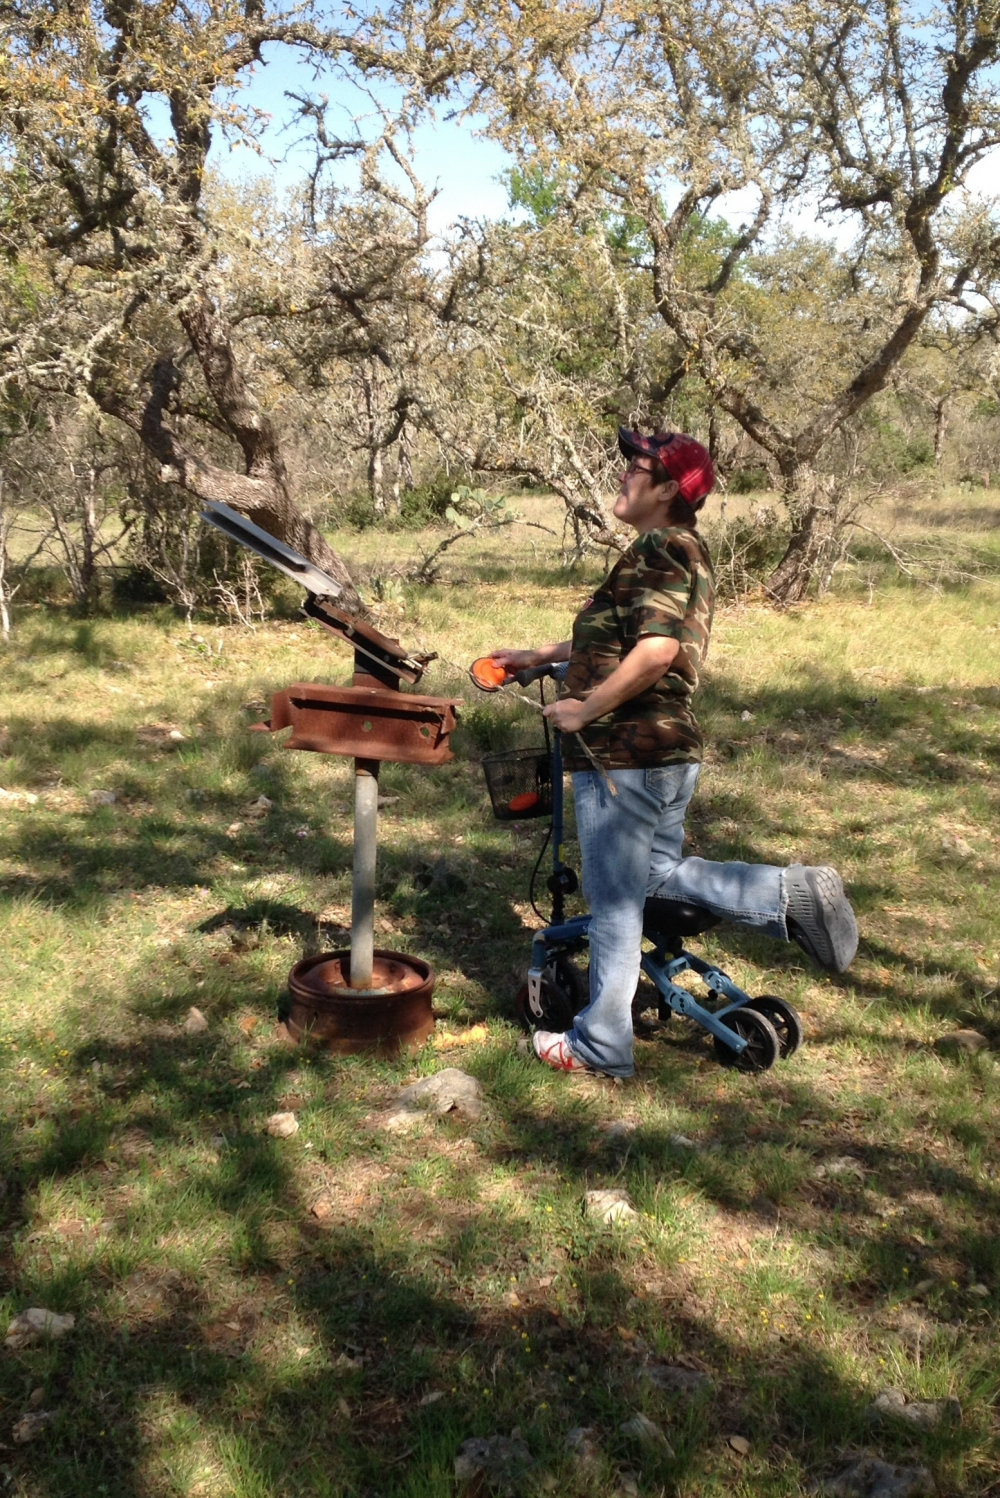 Leslie on the Swivelmate Knee Walker from San Marcos Texas March 2014